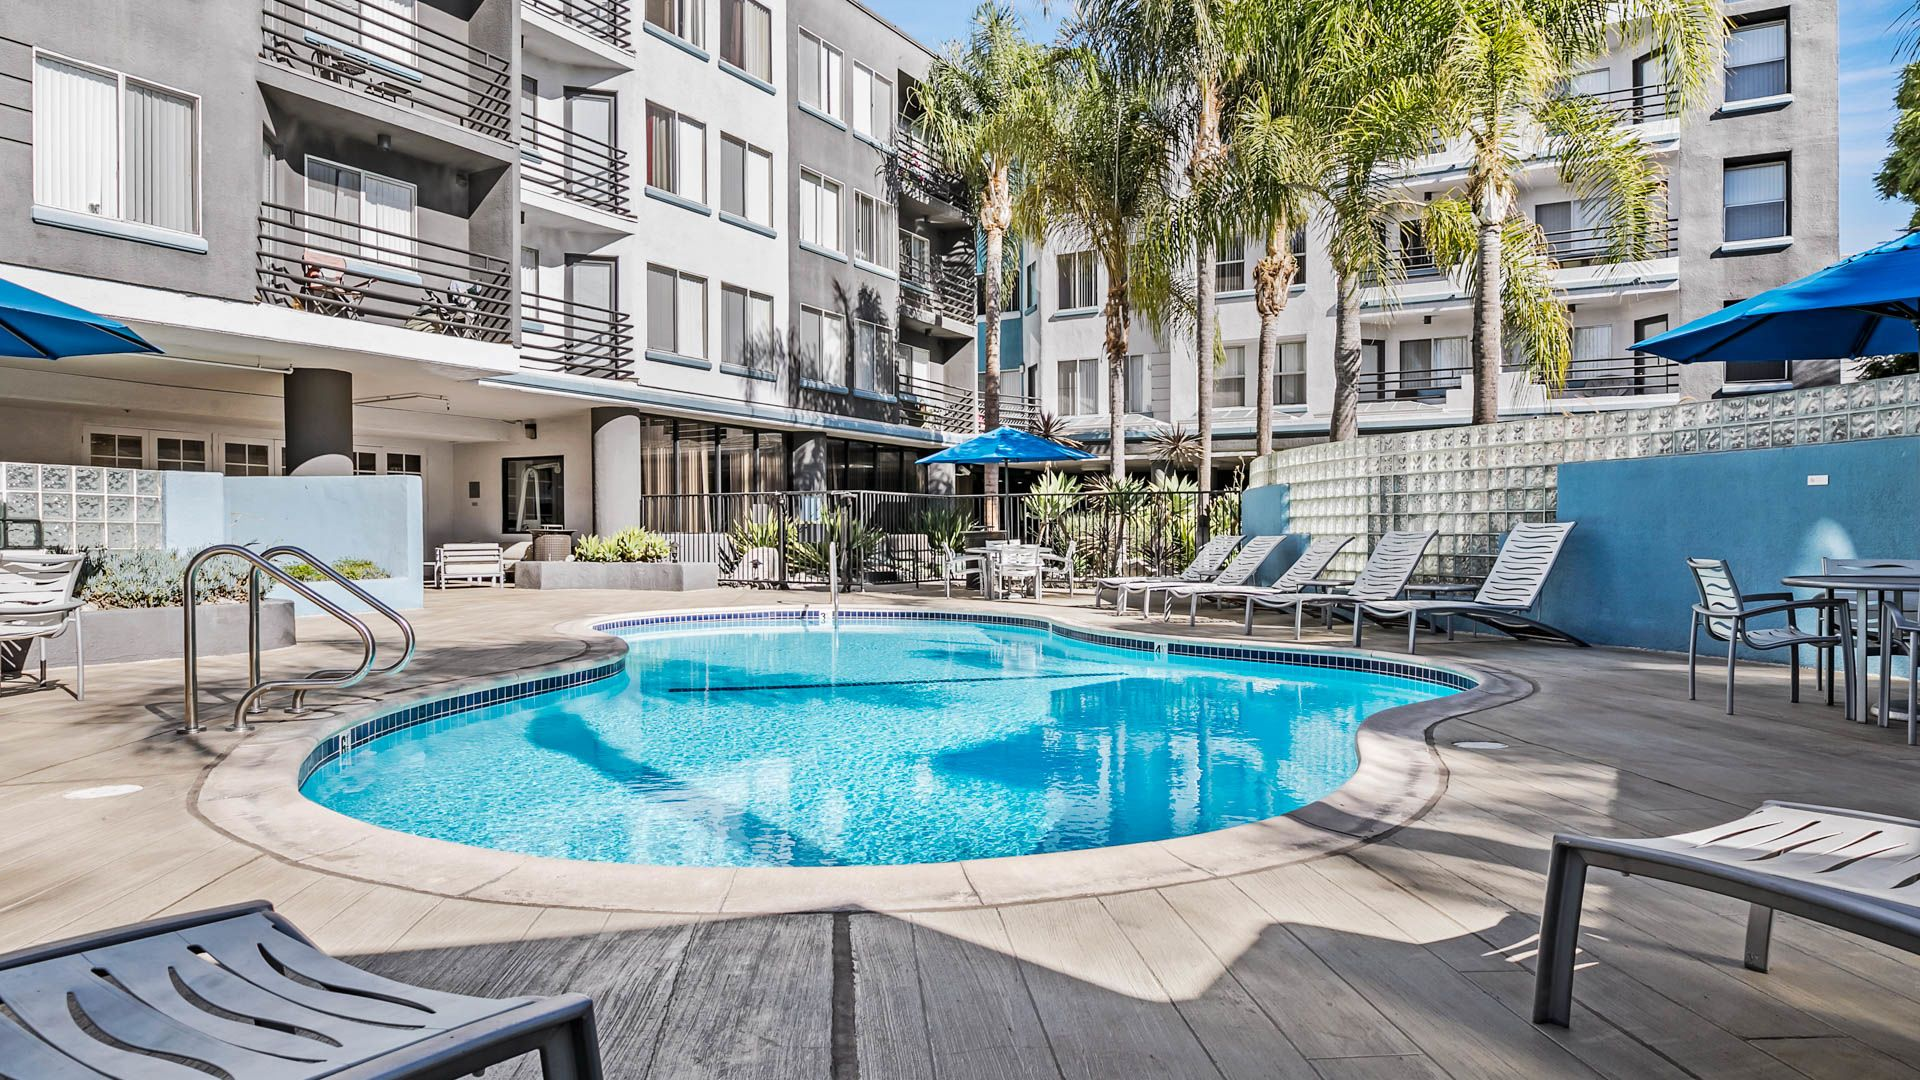 The encore apartments sherman oaks 4920 van nuys blvd - Indoor swimming pool in los angeles ...